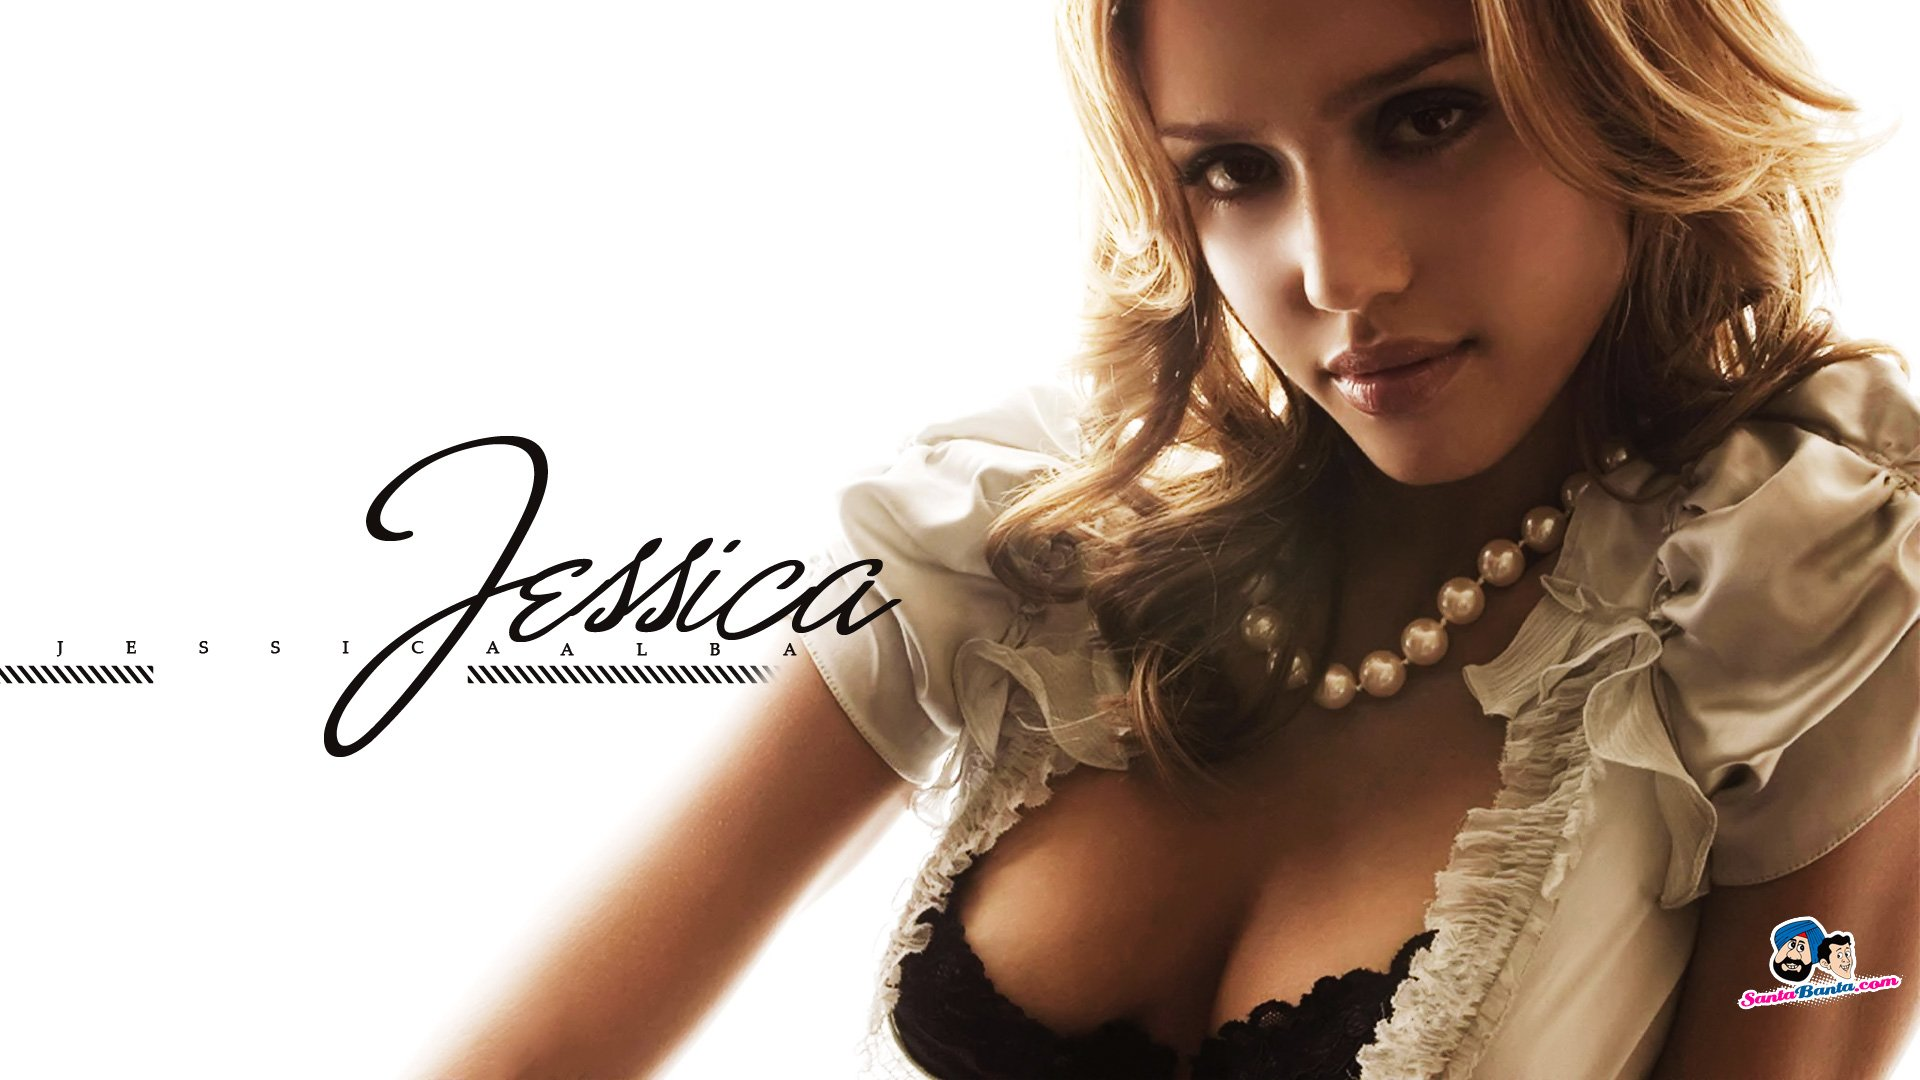 jessica alba wallpaper pc - photo #20